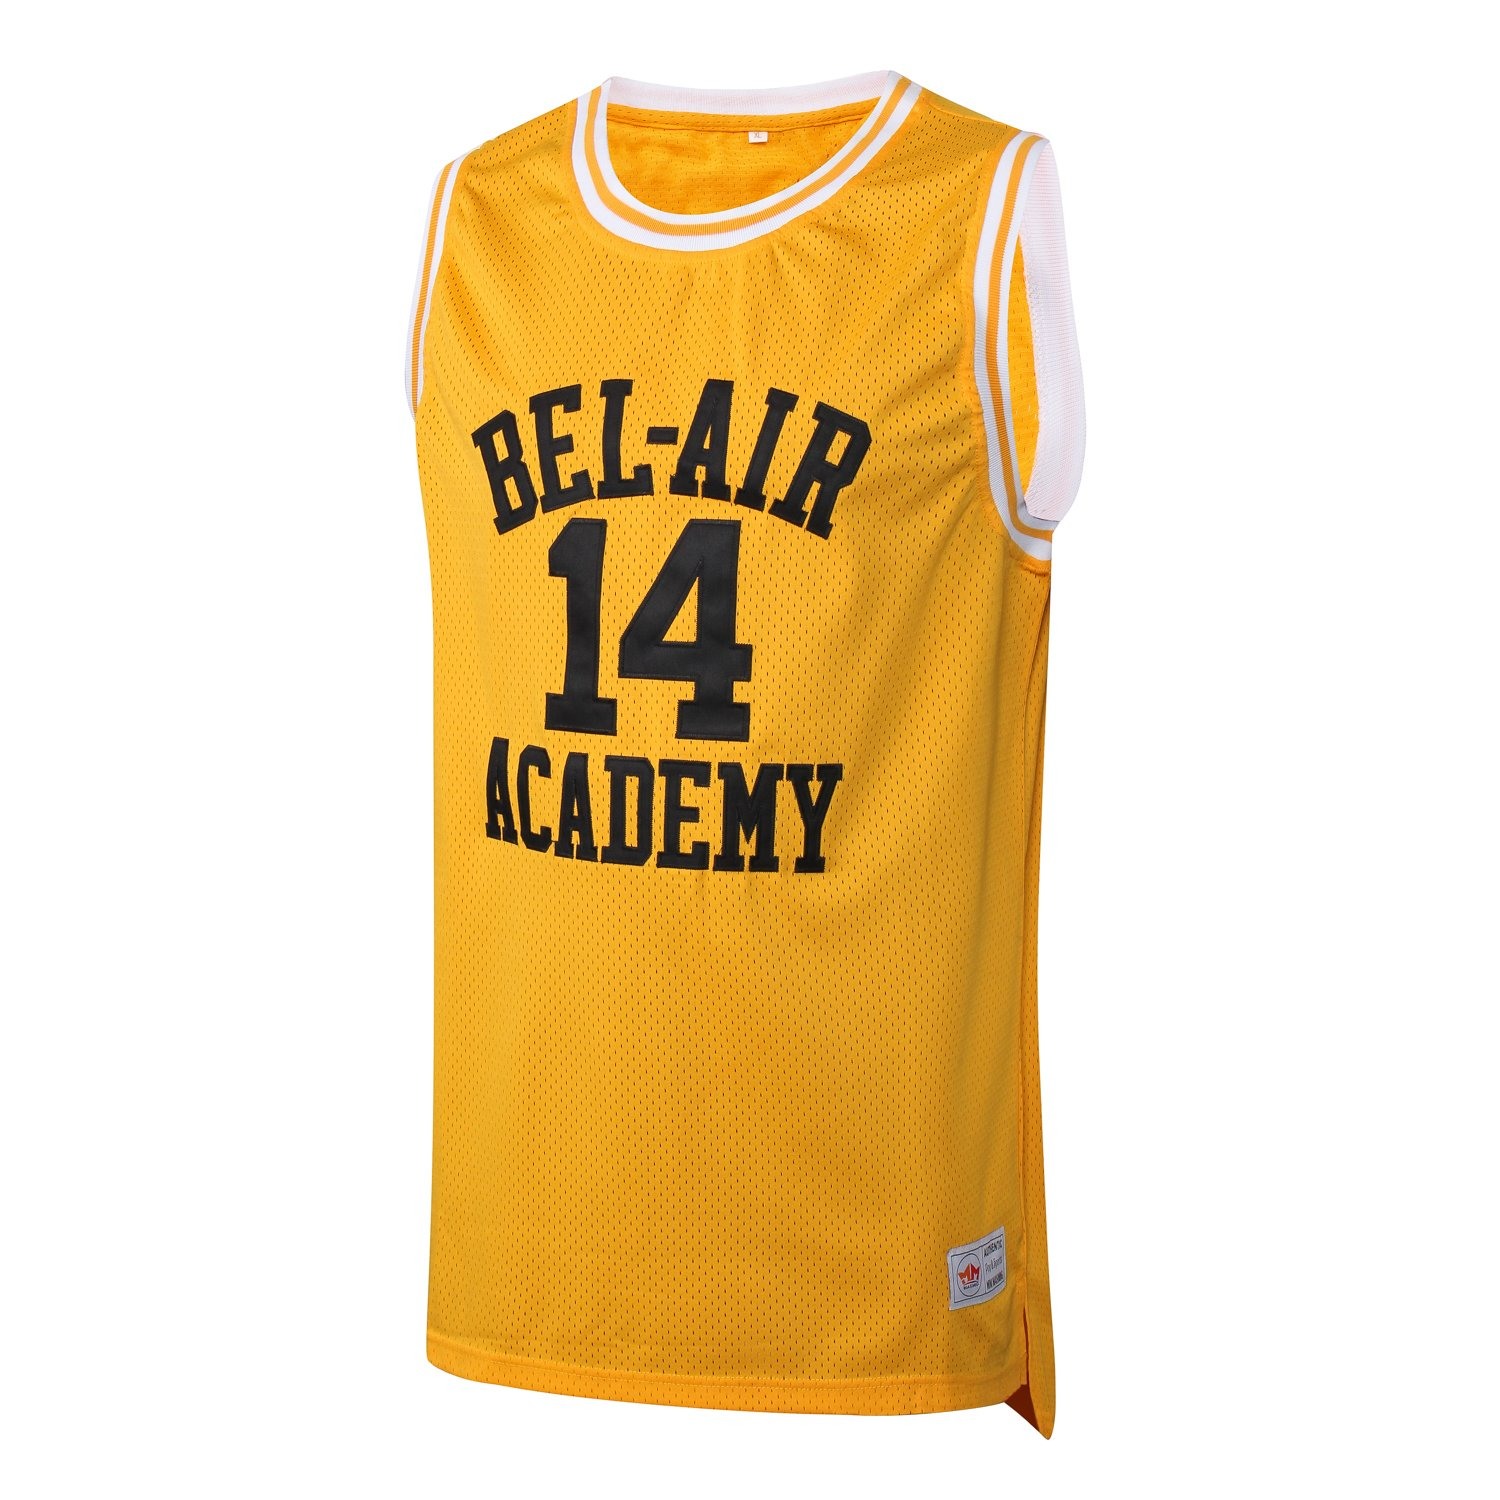 08c9c0f90f5d Amazon.com  MM MASMIG Will Smith 14 The Fresh Prince of Bel Air Academy  Basketball Jersey S-XXL Yellow  Clothing